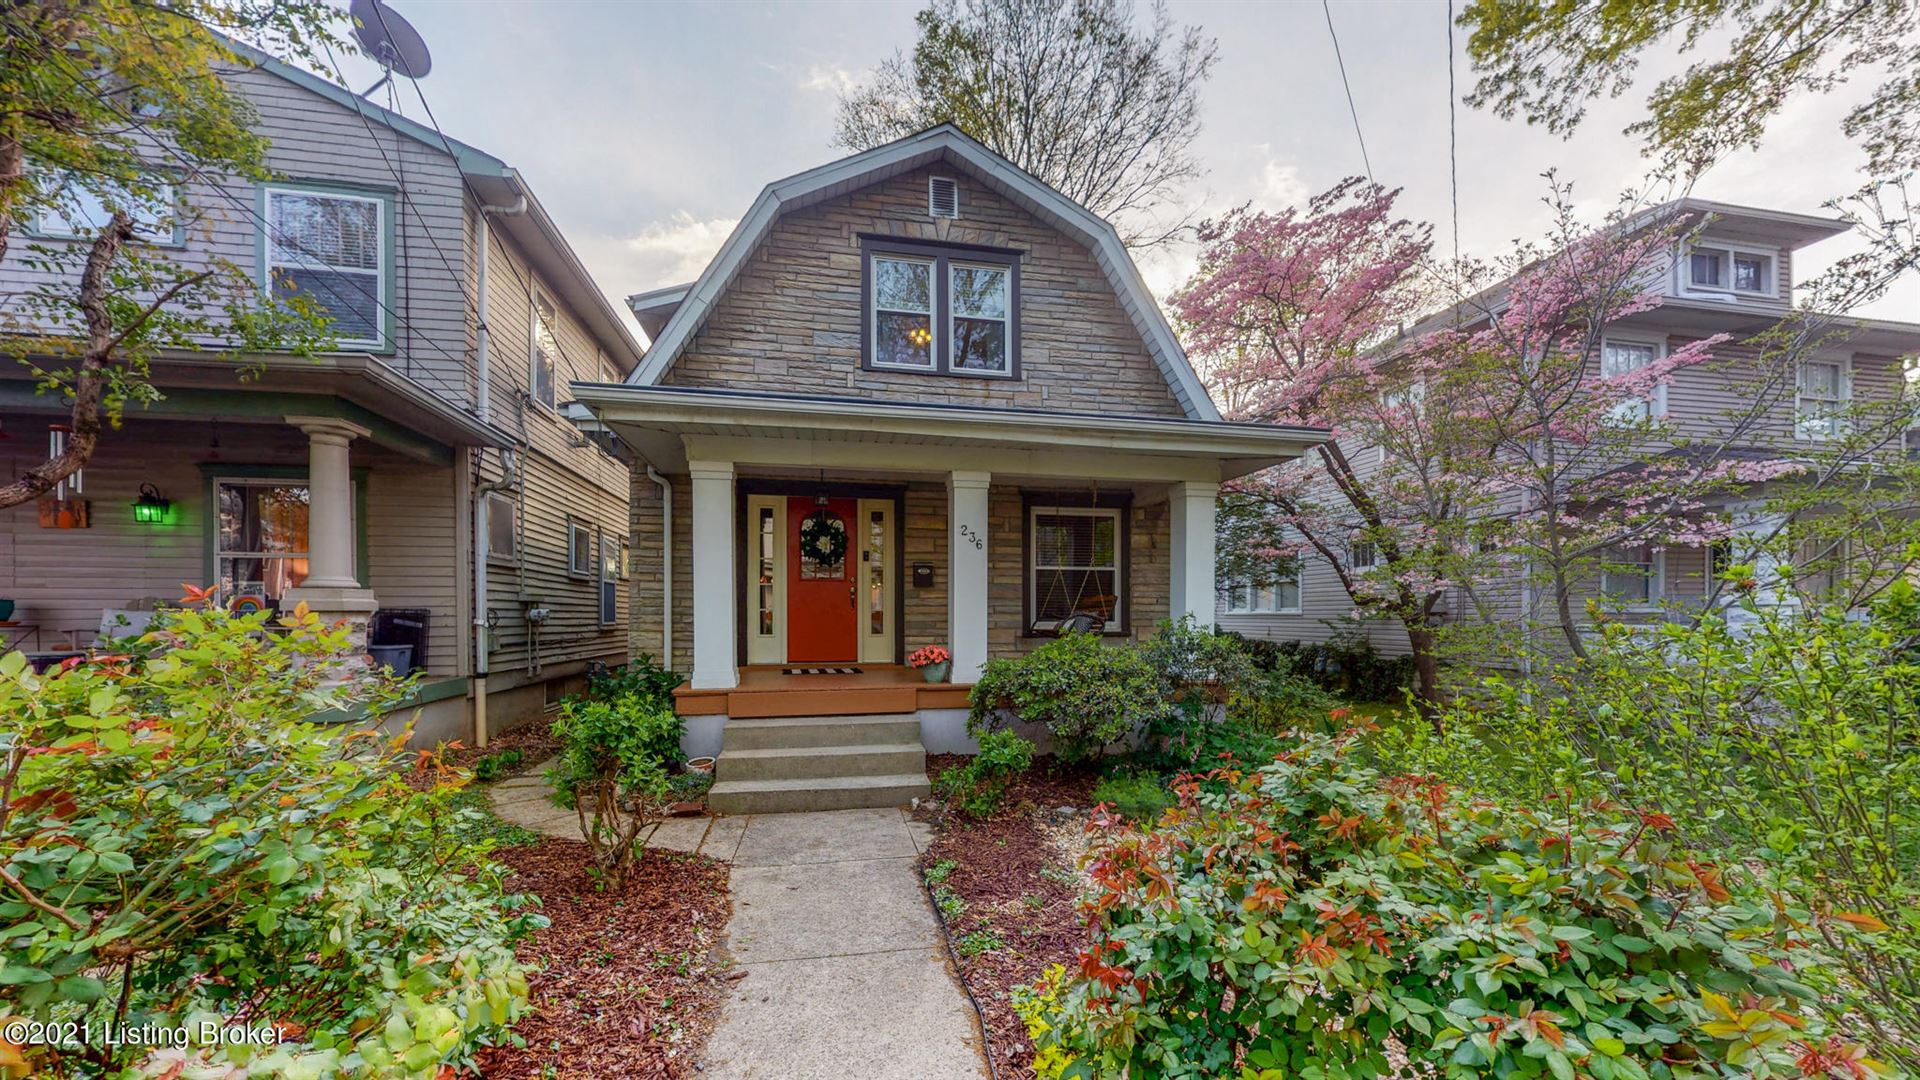 Photo for 236 S Bayly Ave, Louisville, KY 40206 (MLS # 1583995)